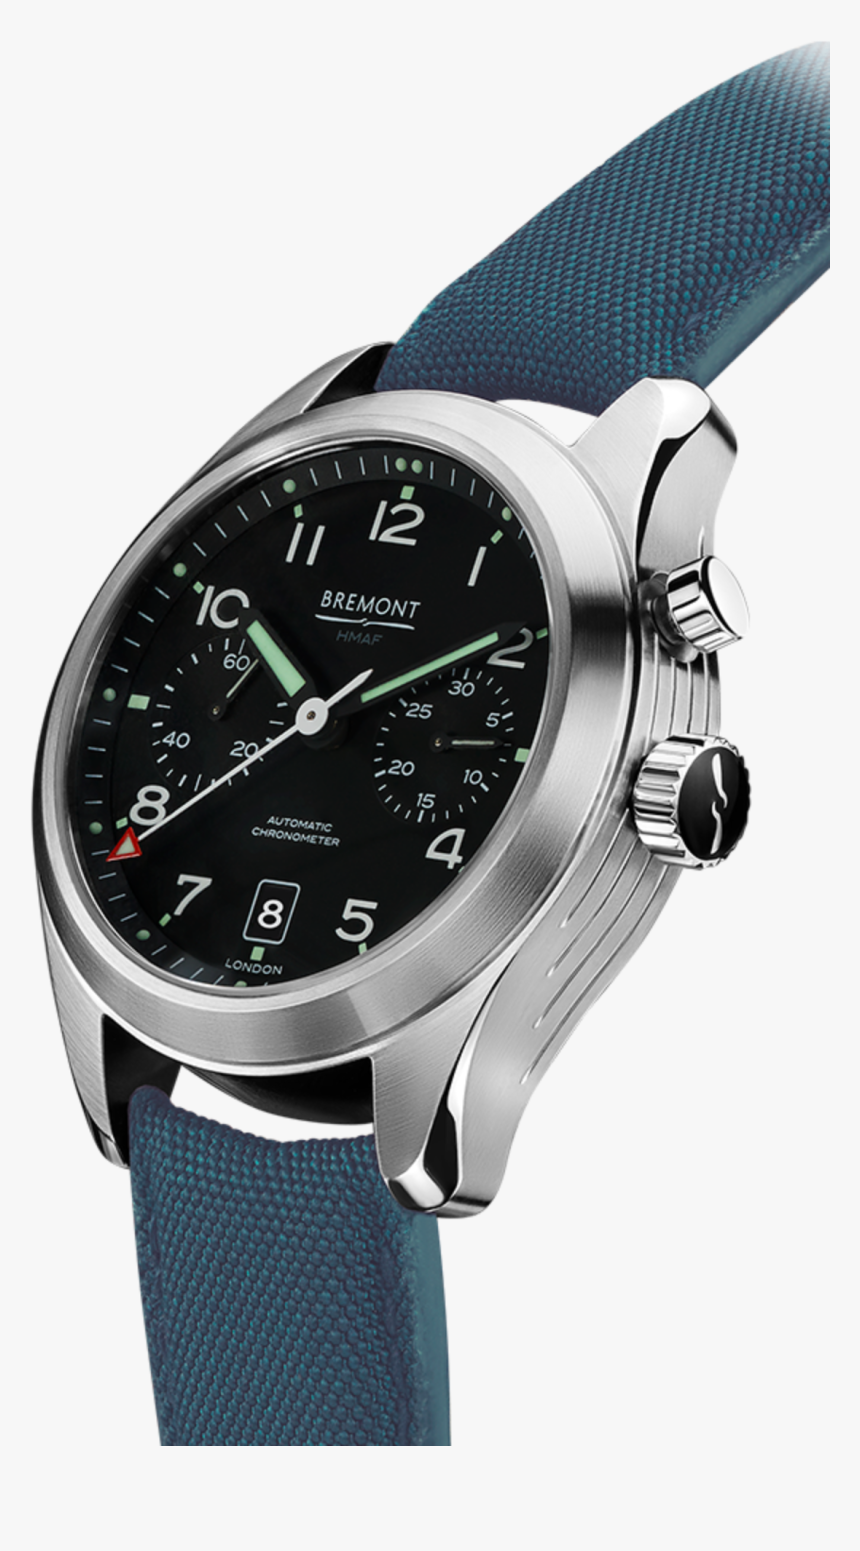 Bremont Arrow, HD Png Download, Free Download